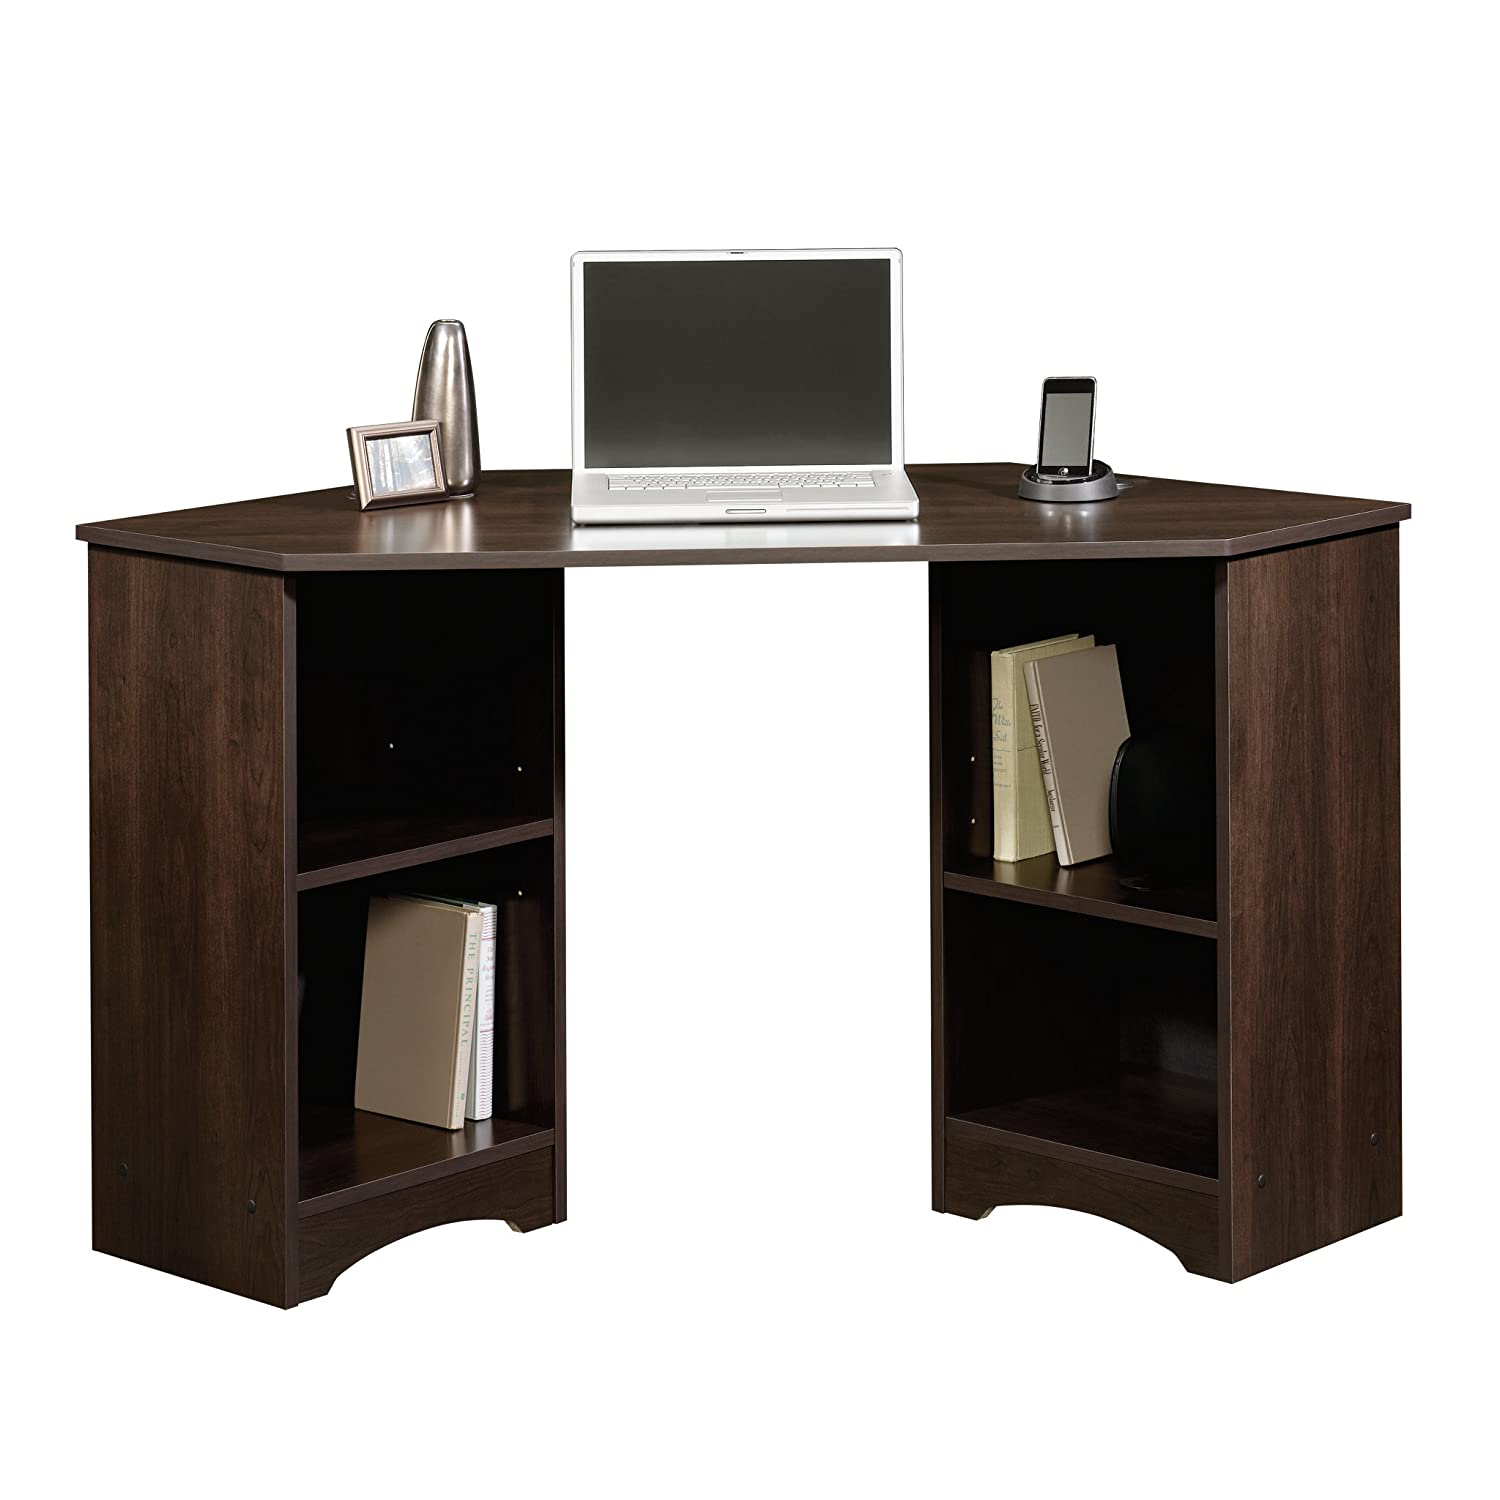 Sauder Beginnings Corner Desk, Cherry by Sauder